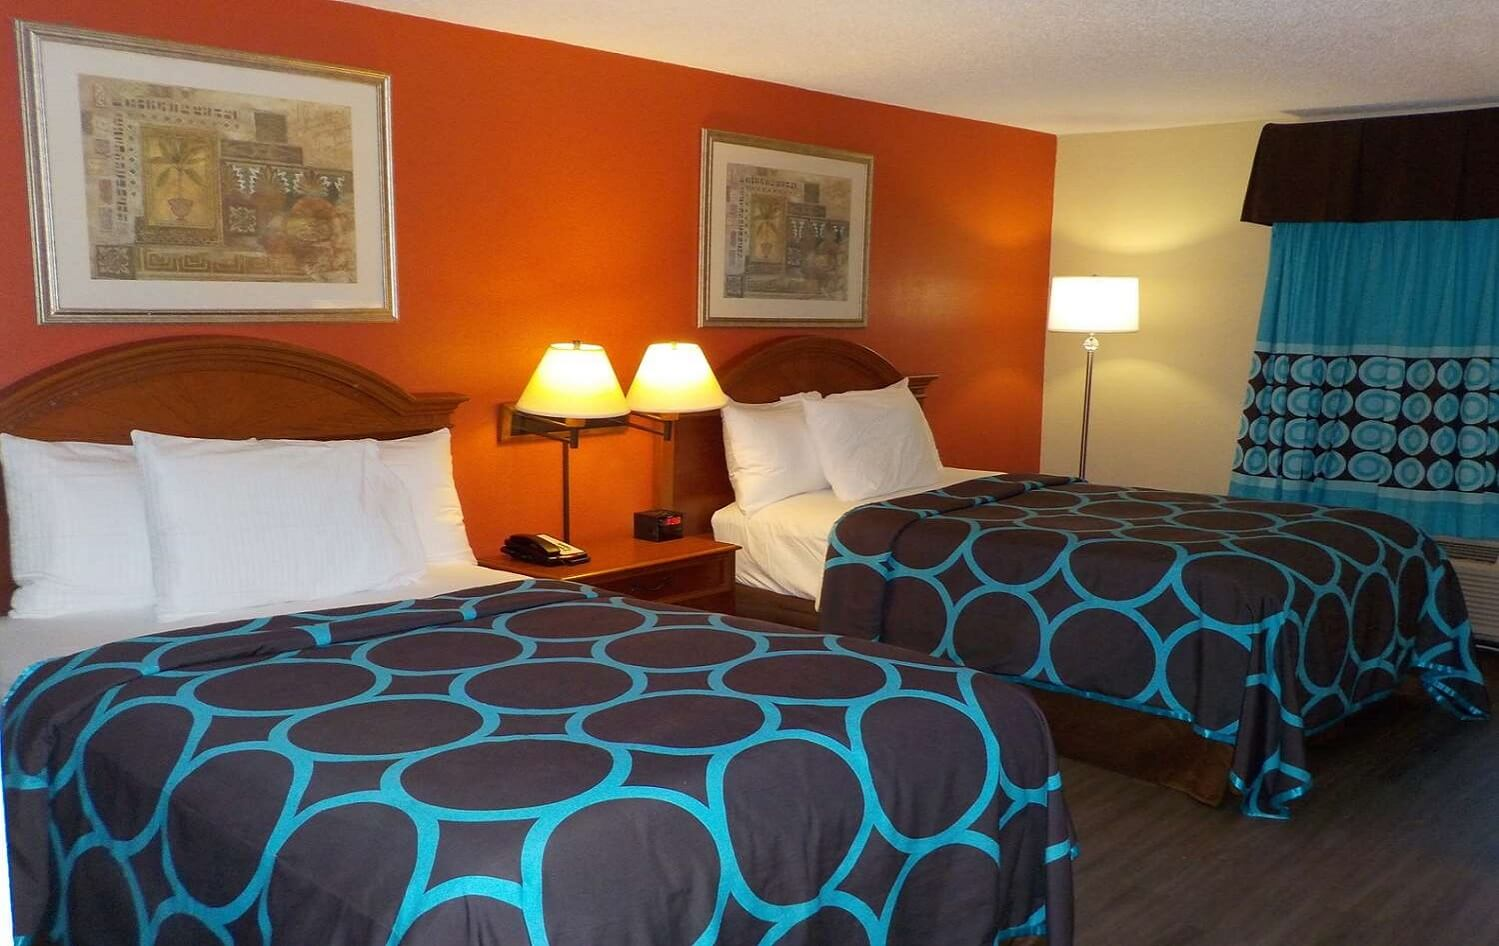 SureStay Hotel By Best Western - Double Beds Room-1